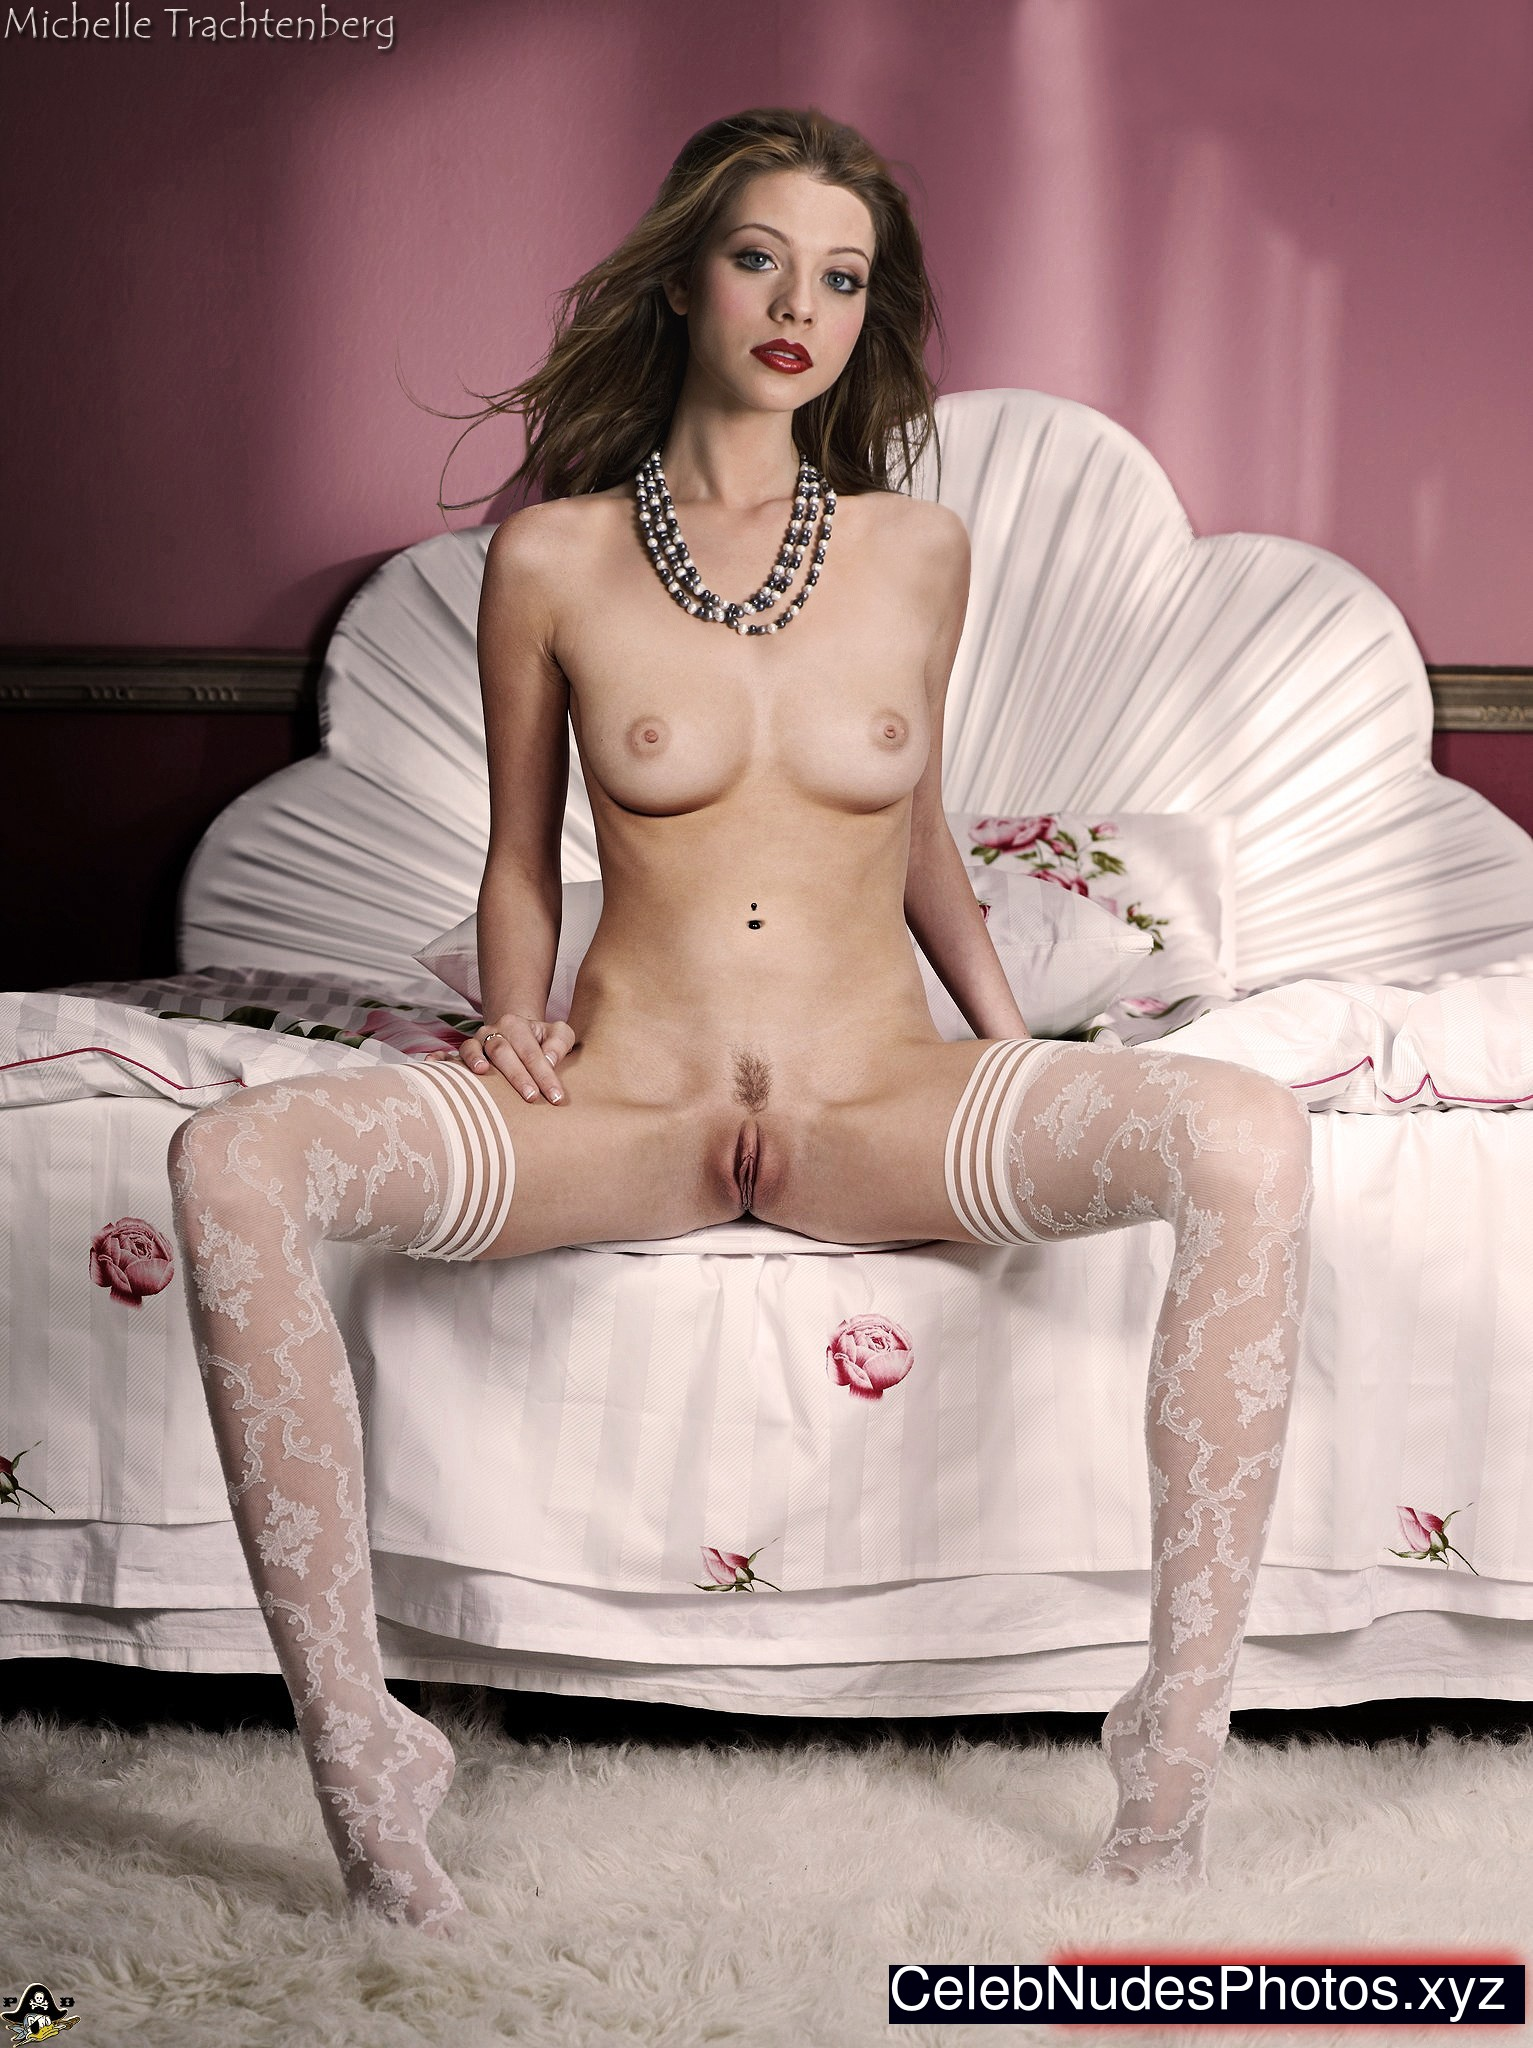 Michelle Trachtenberg Celebs Naked sexy 11